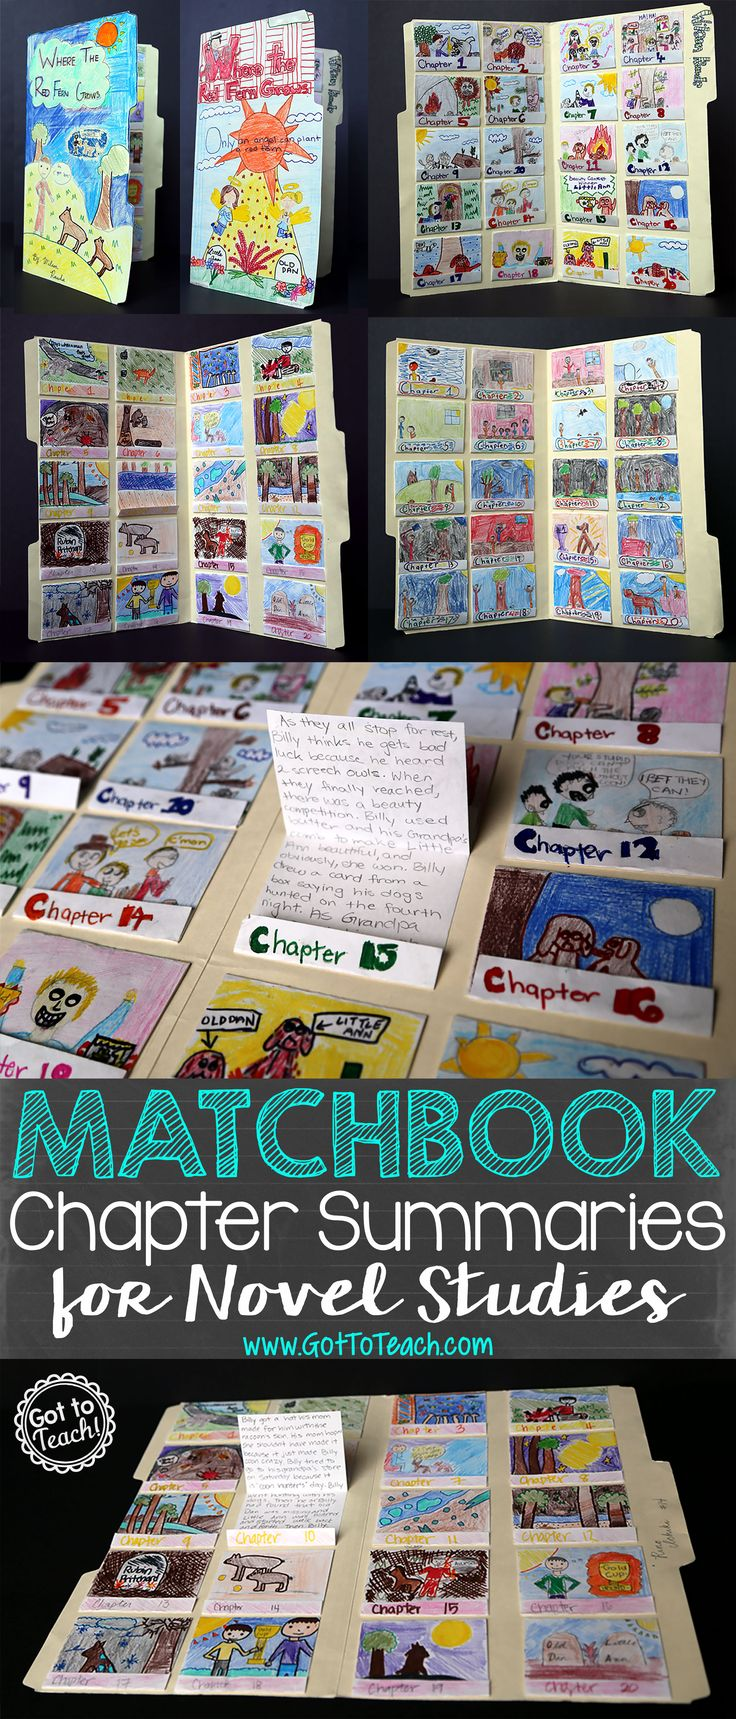 Matchbook Chapter Summaries for Novel Studies. This project is so simple, and you can do it with any novel. This example is for Where the Red Fern Grows. This could be modified for use with Golden Sowers - summarize each book, etc.